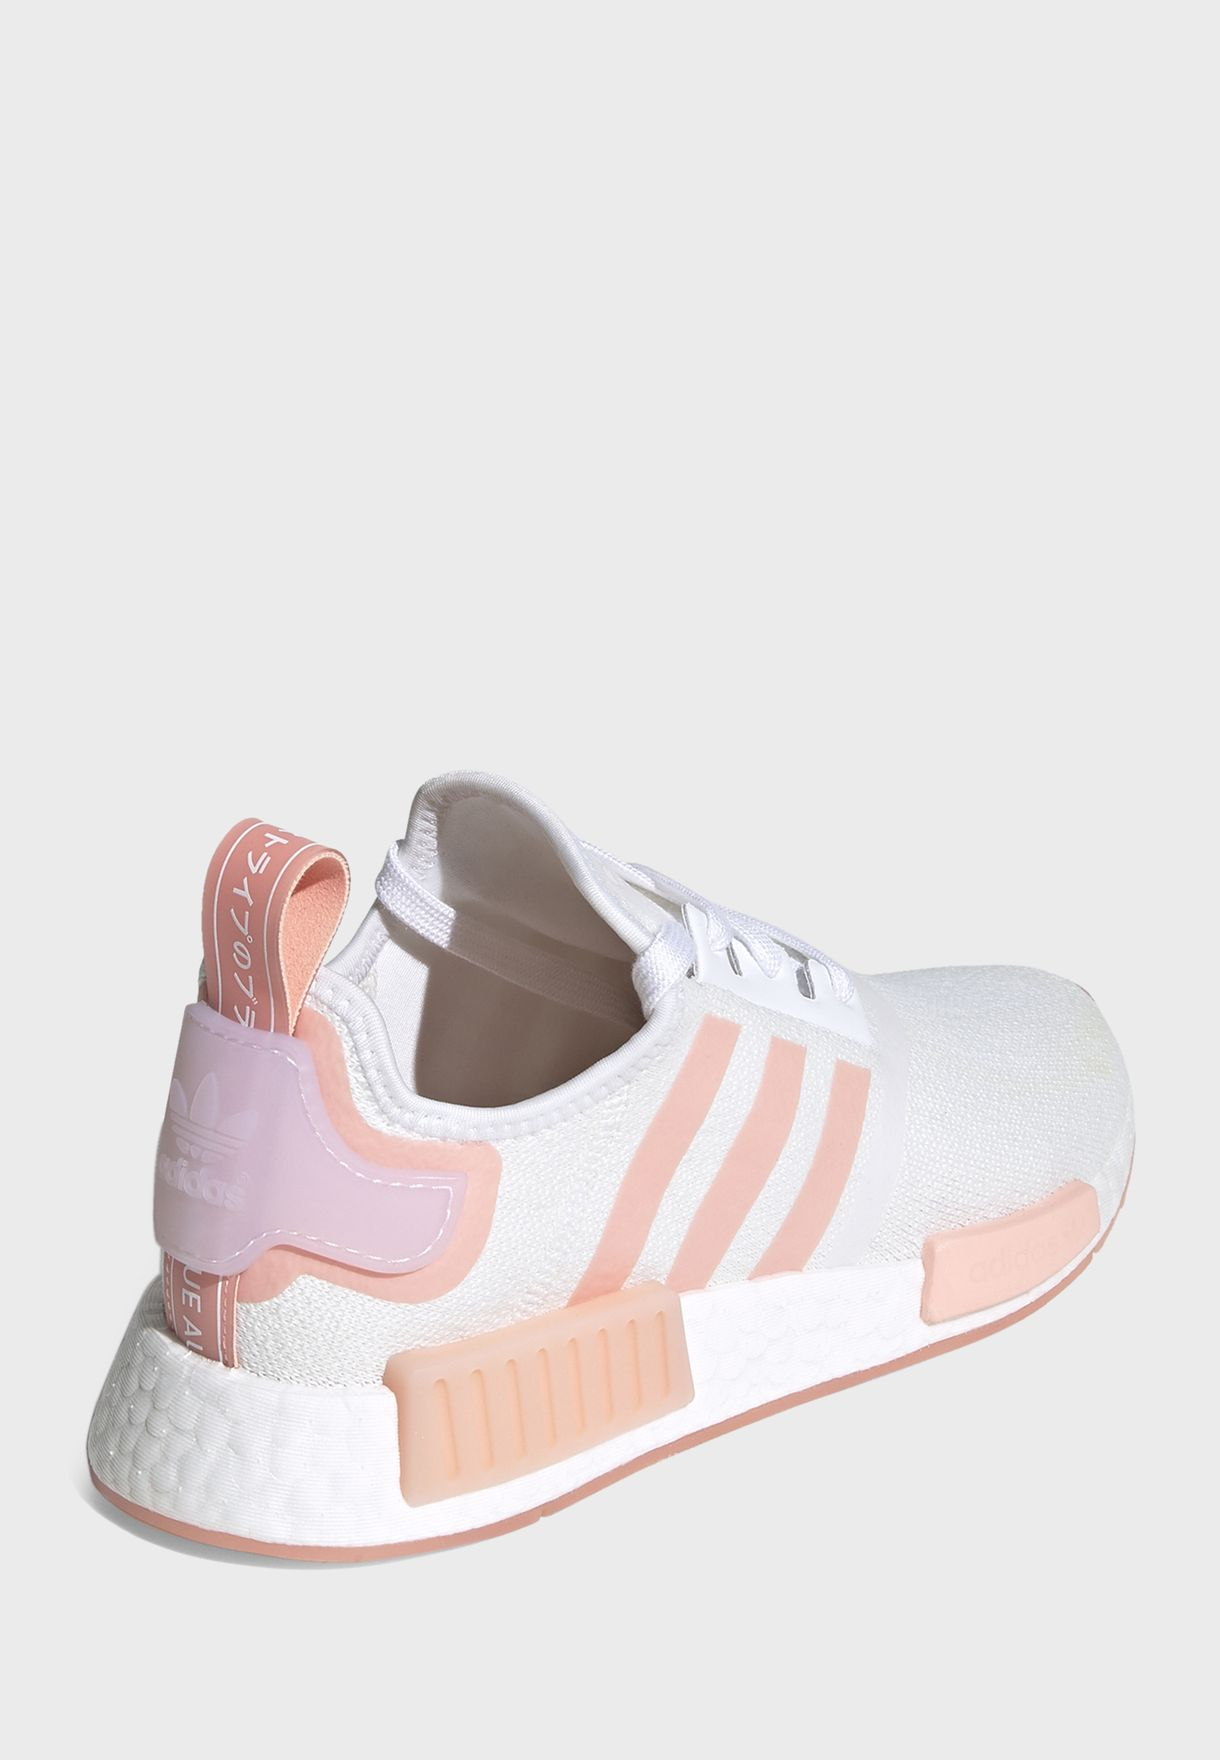 NMD_R1 Casual Women's Sneakers Shoes